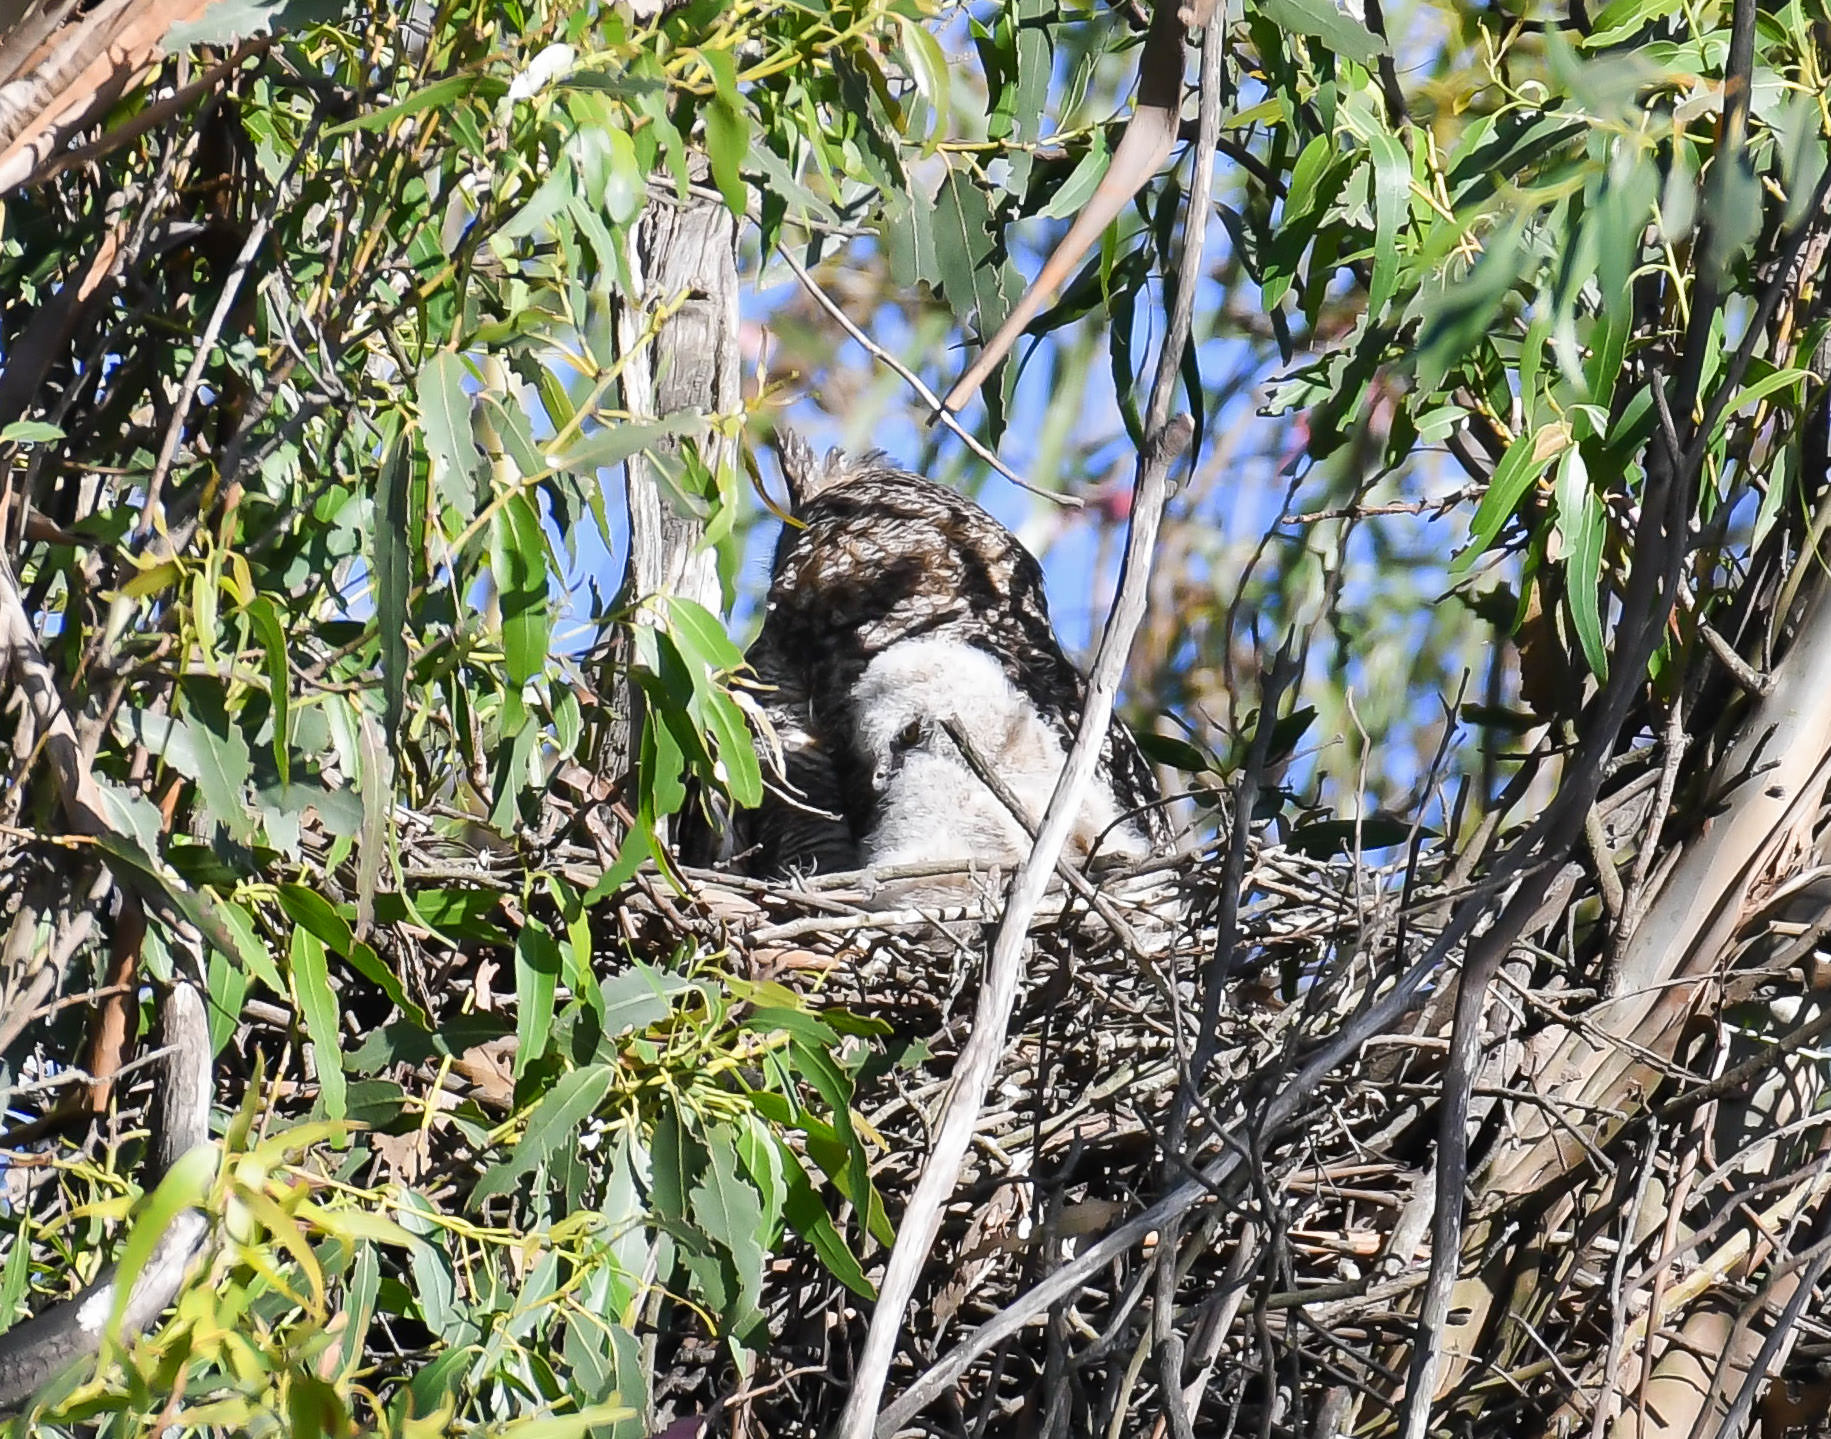 A baby Great Horned Owl snuggling up to its mother owl in their nest